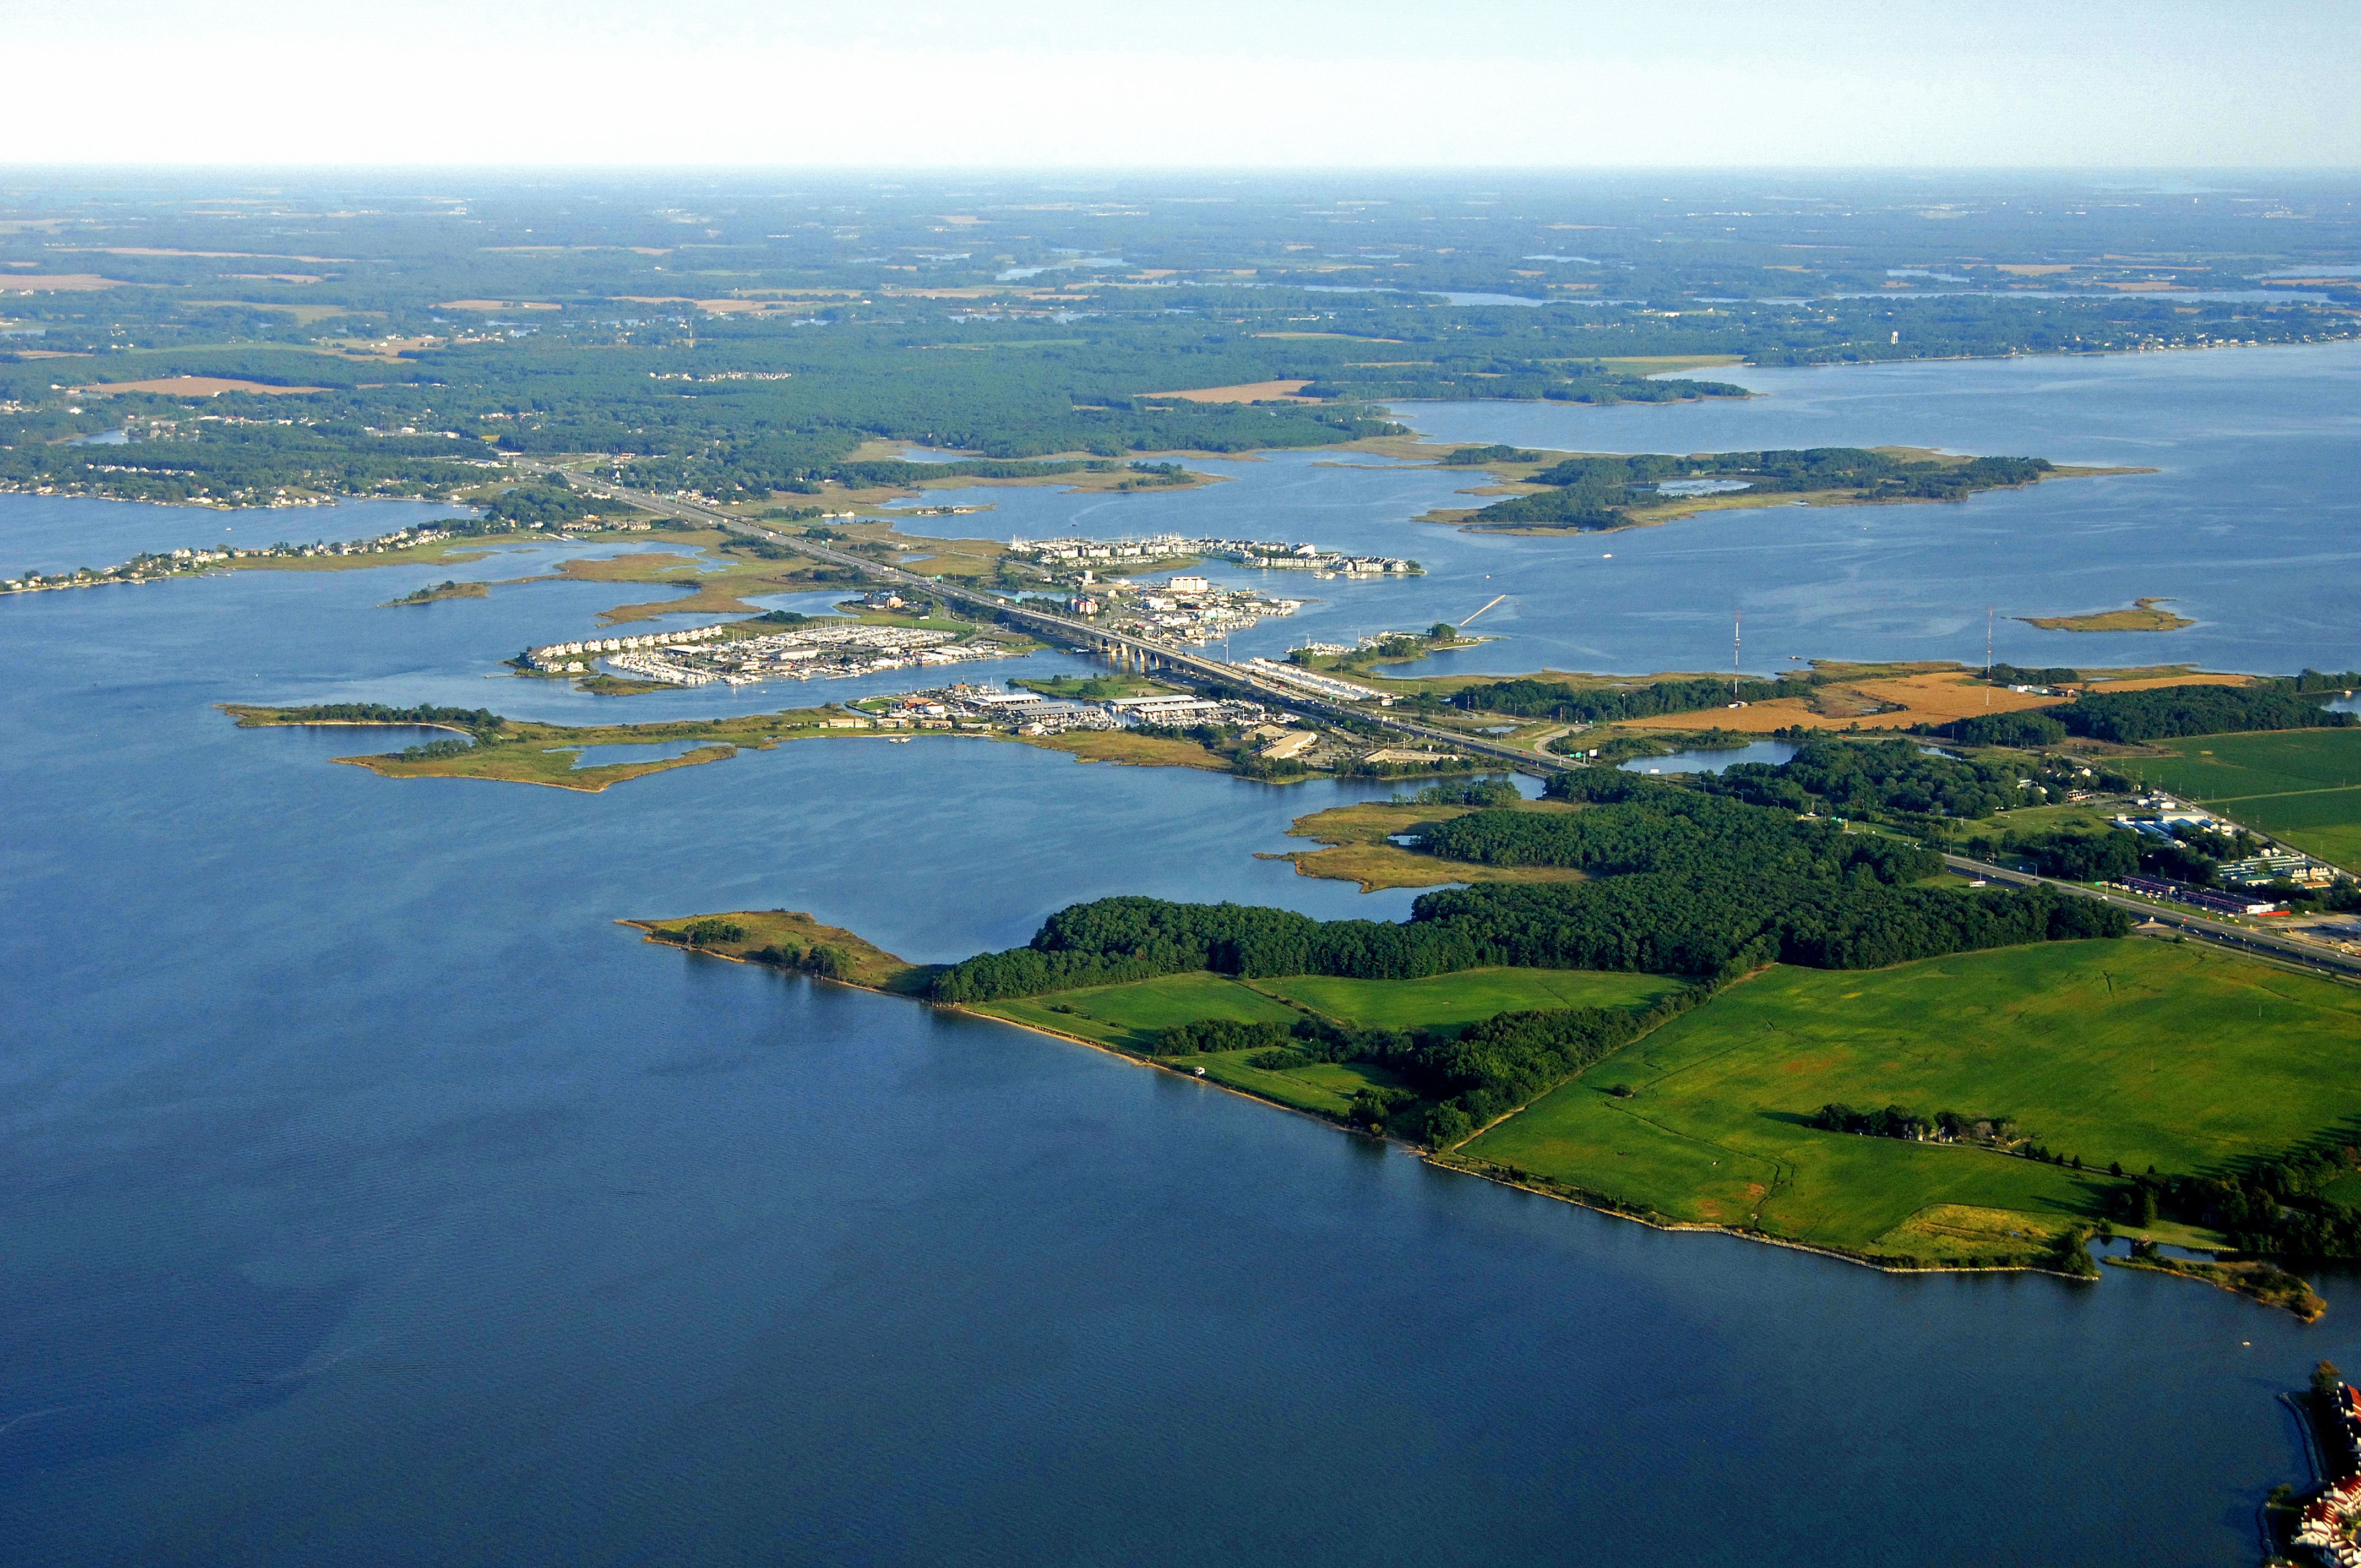 kent narrows harbor in grasonville  md  united states - harbor reviews - phone number